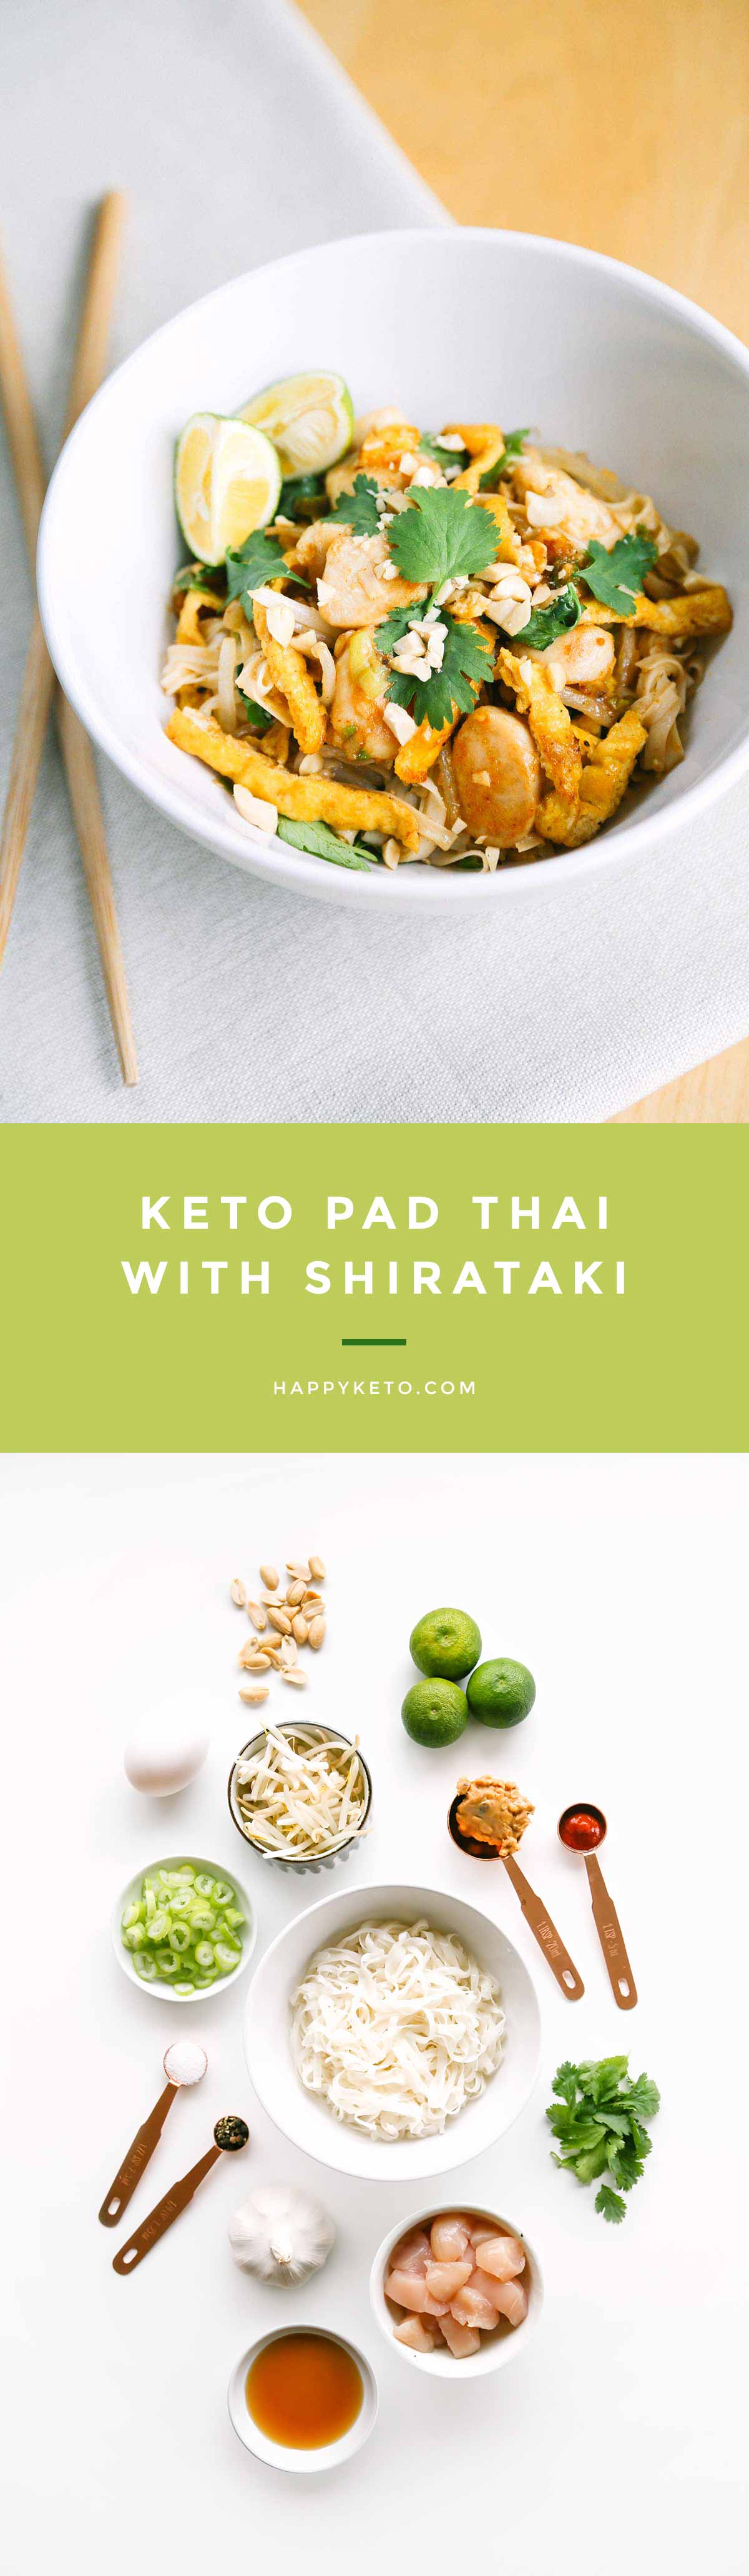 Keto pad thai recipe for low carb. Uses shirataki noodles with chicken.